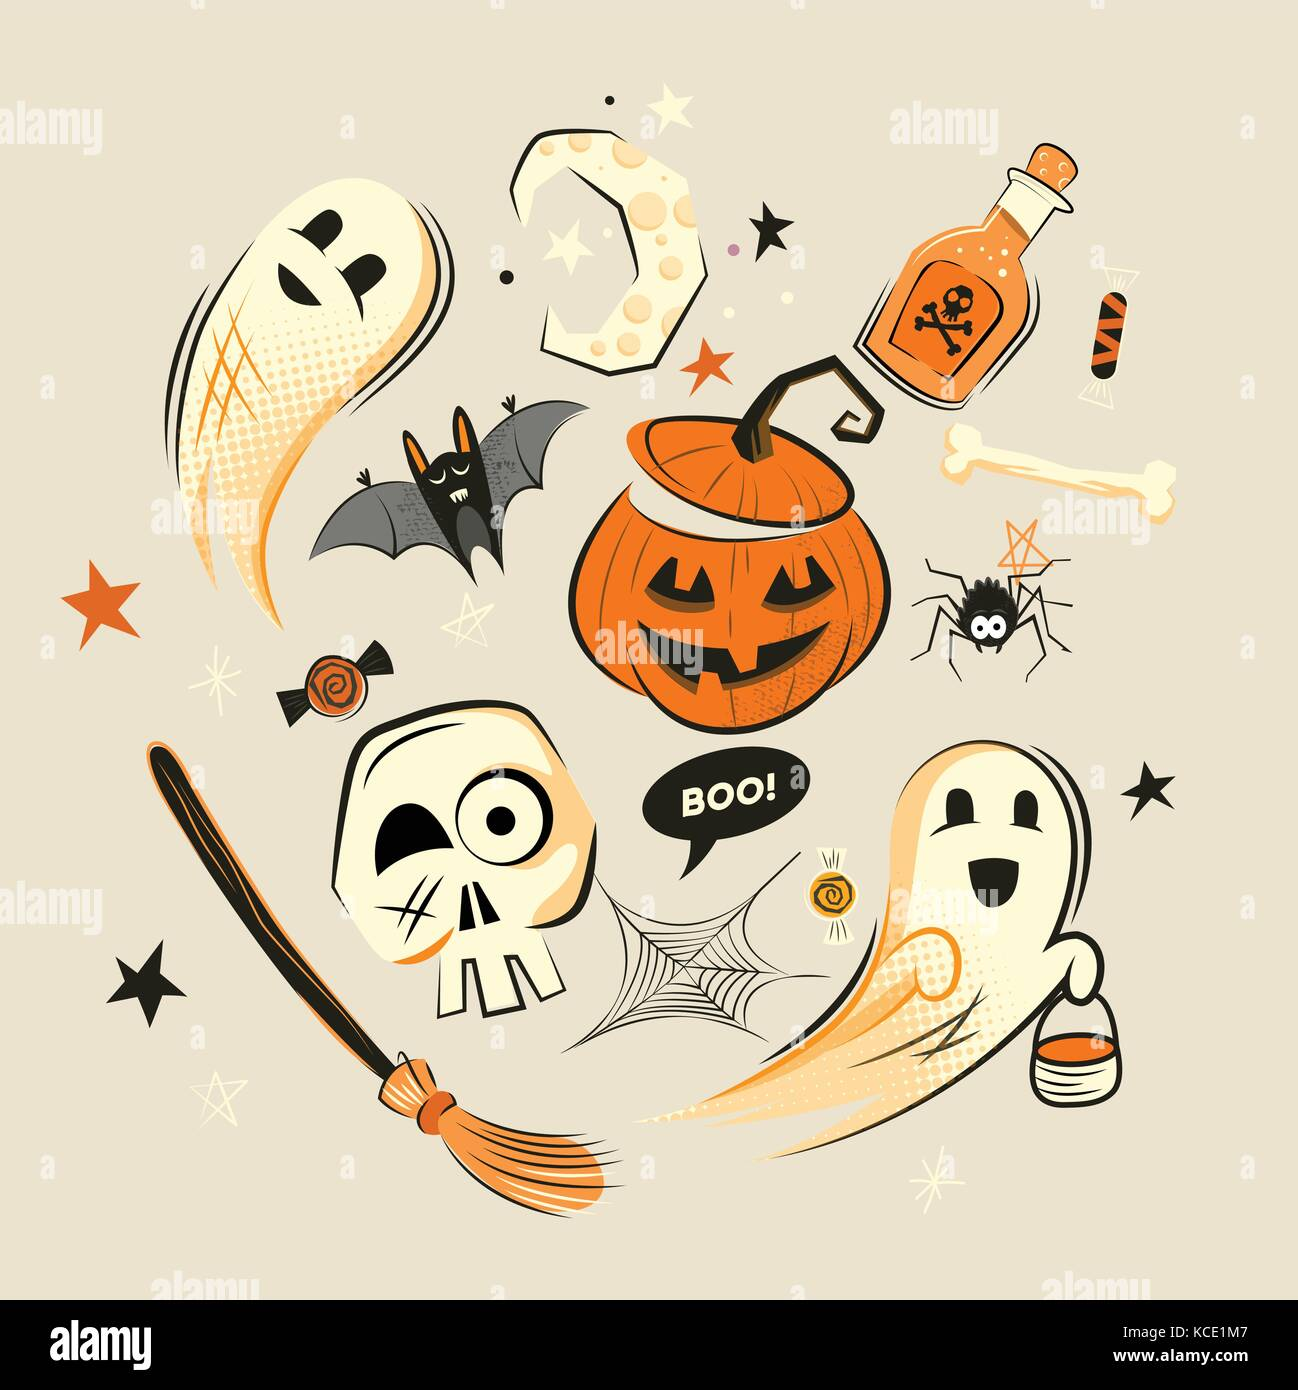 Halloween design vector decorations and characters. - Stock Image